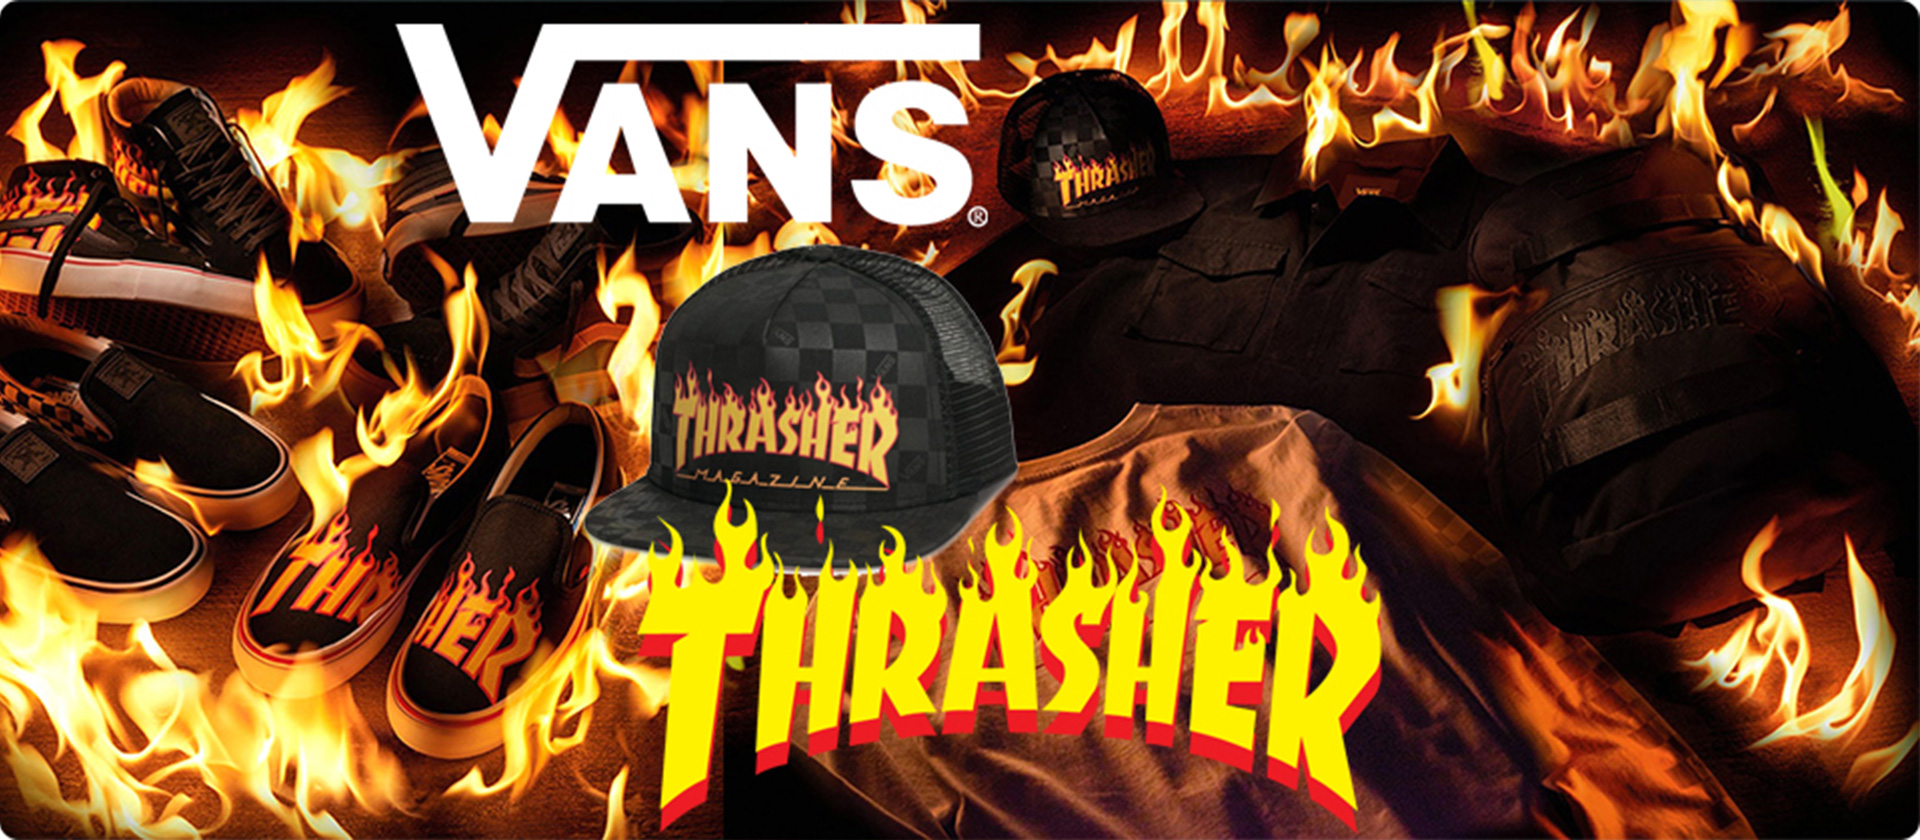 Vans X Thrasher Colab - SoCal Surf Shop